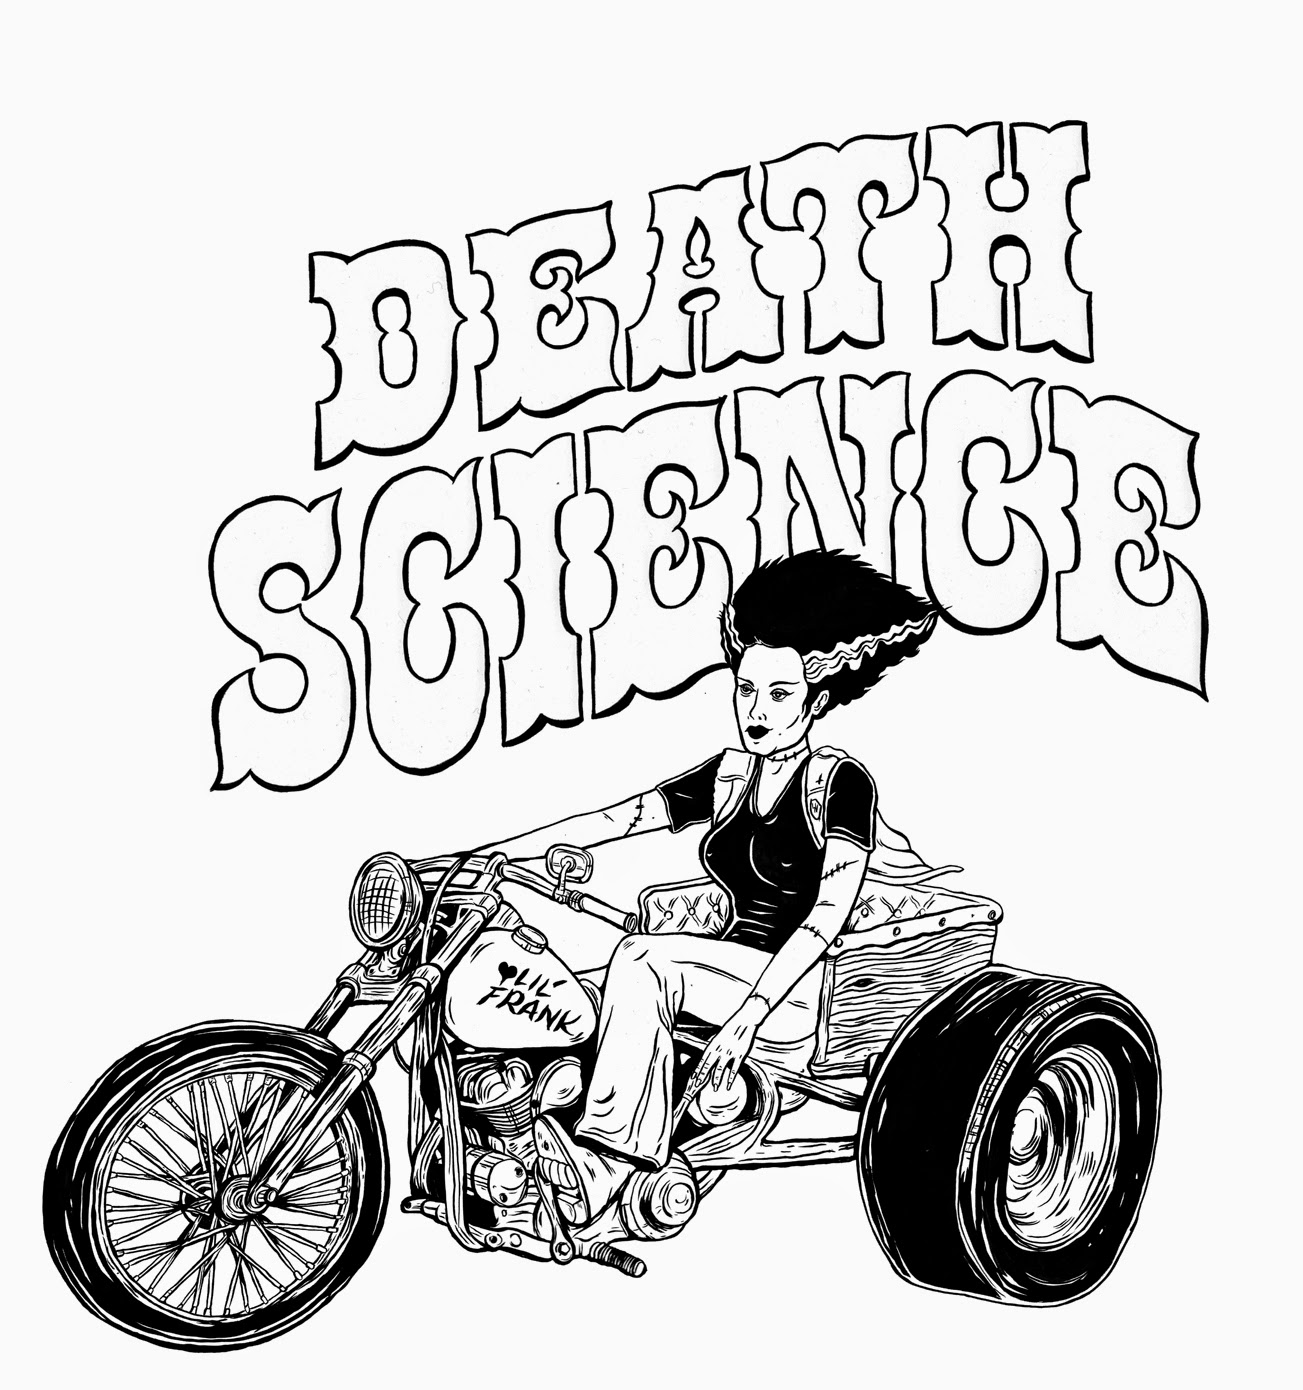 DEATH SCIENCE STORE